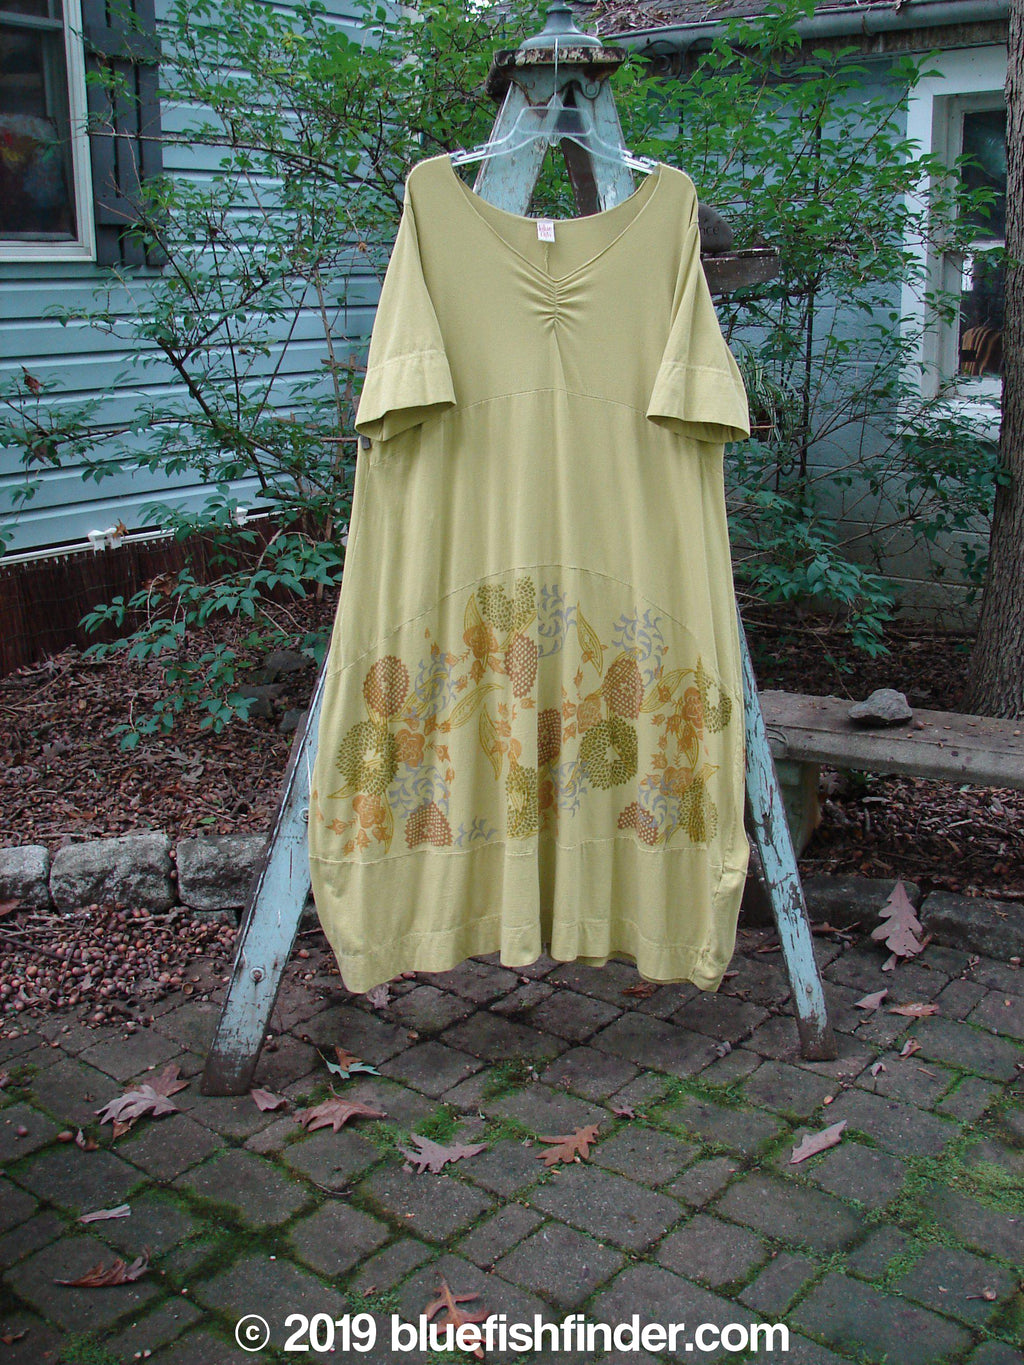 Vintage Blue Fish Clothing Barclay Gather Sectional Dress Whimsical Garden Split Pea Size 1- Bluefishfinder.com